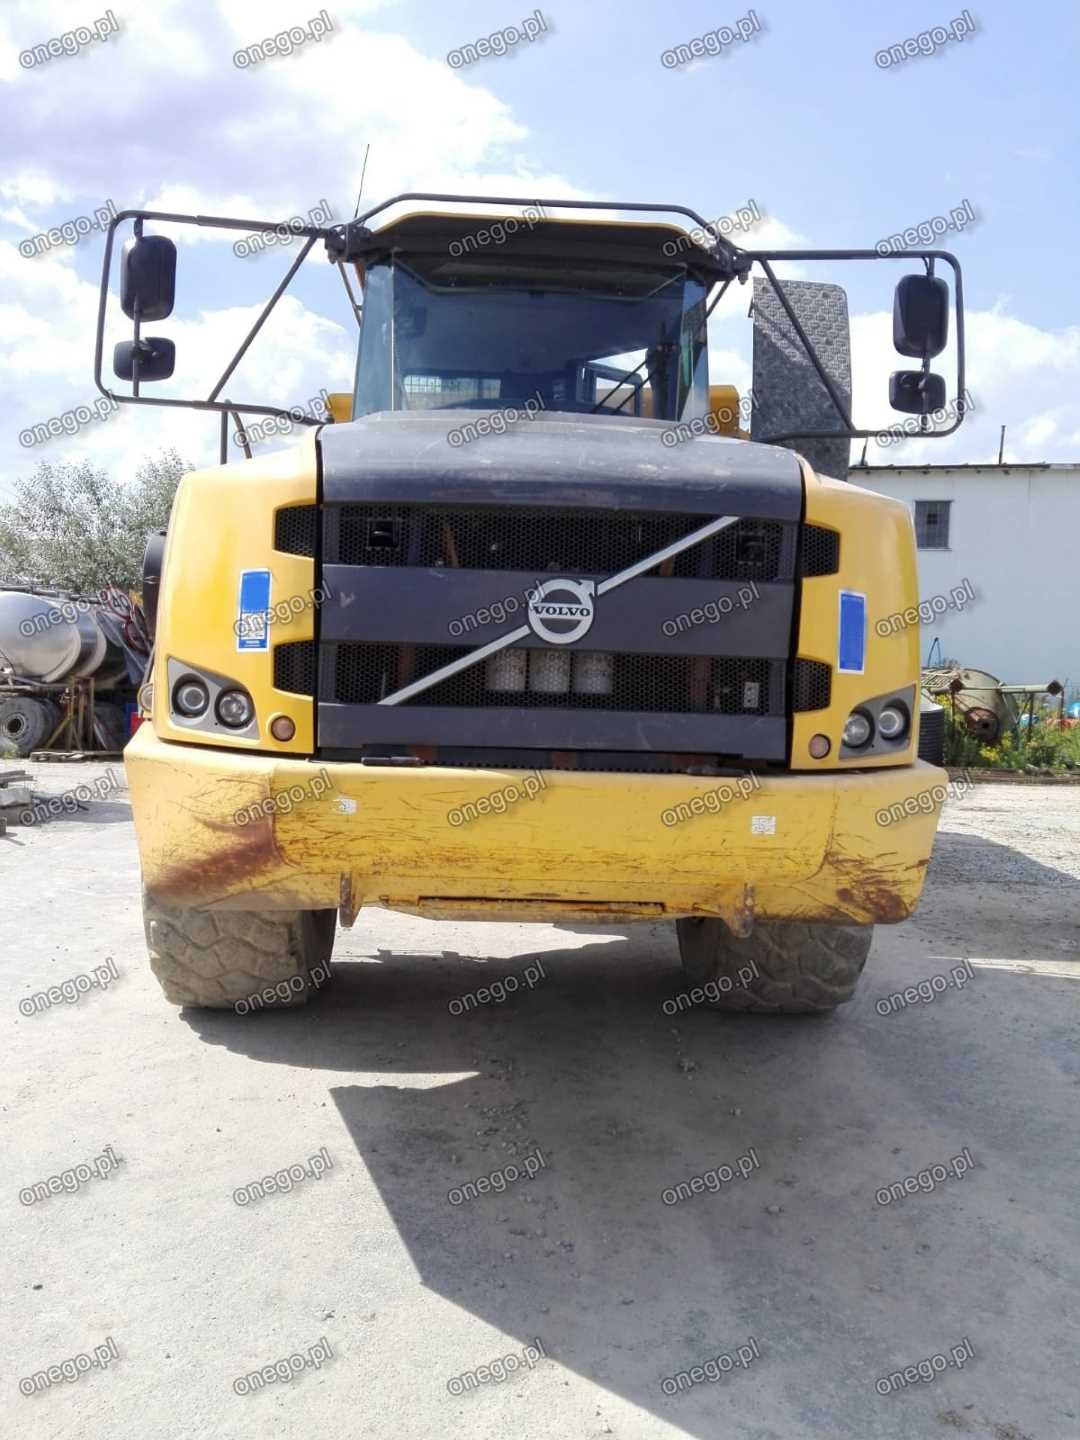 Volvo haulers - disabling AdBlue SCR / DPF systems